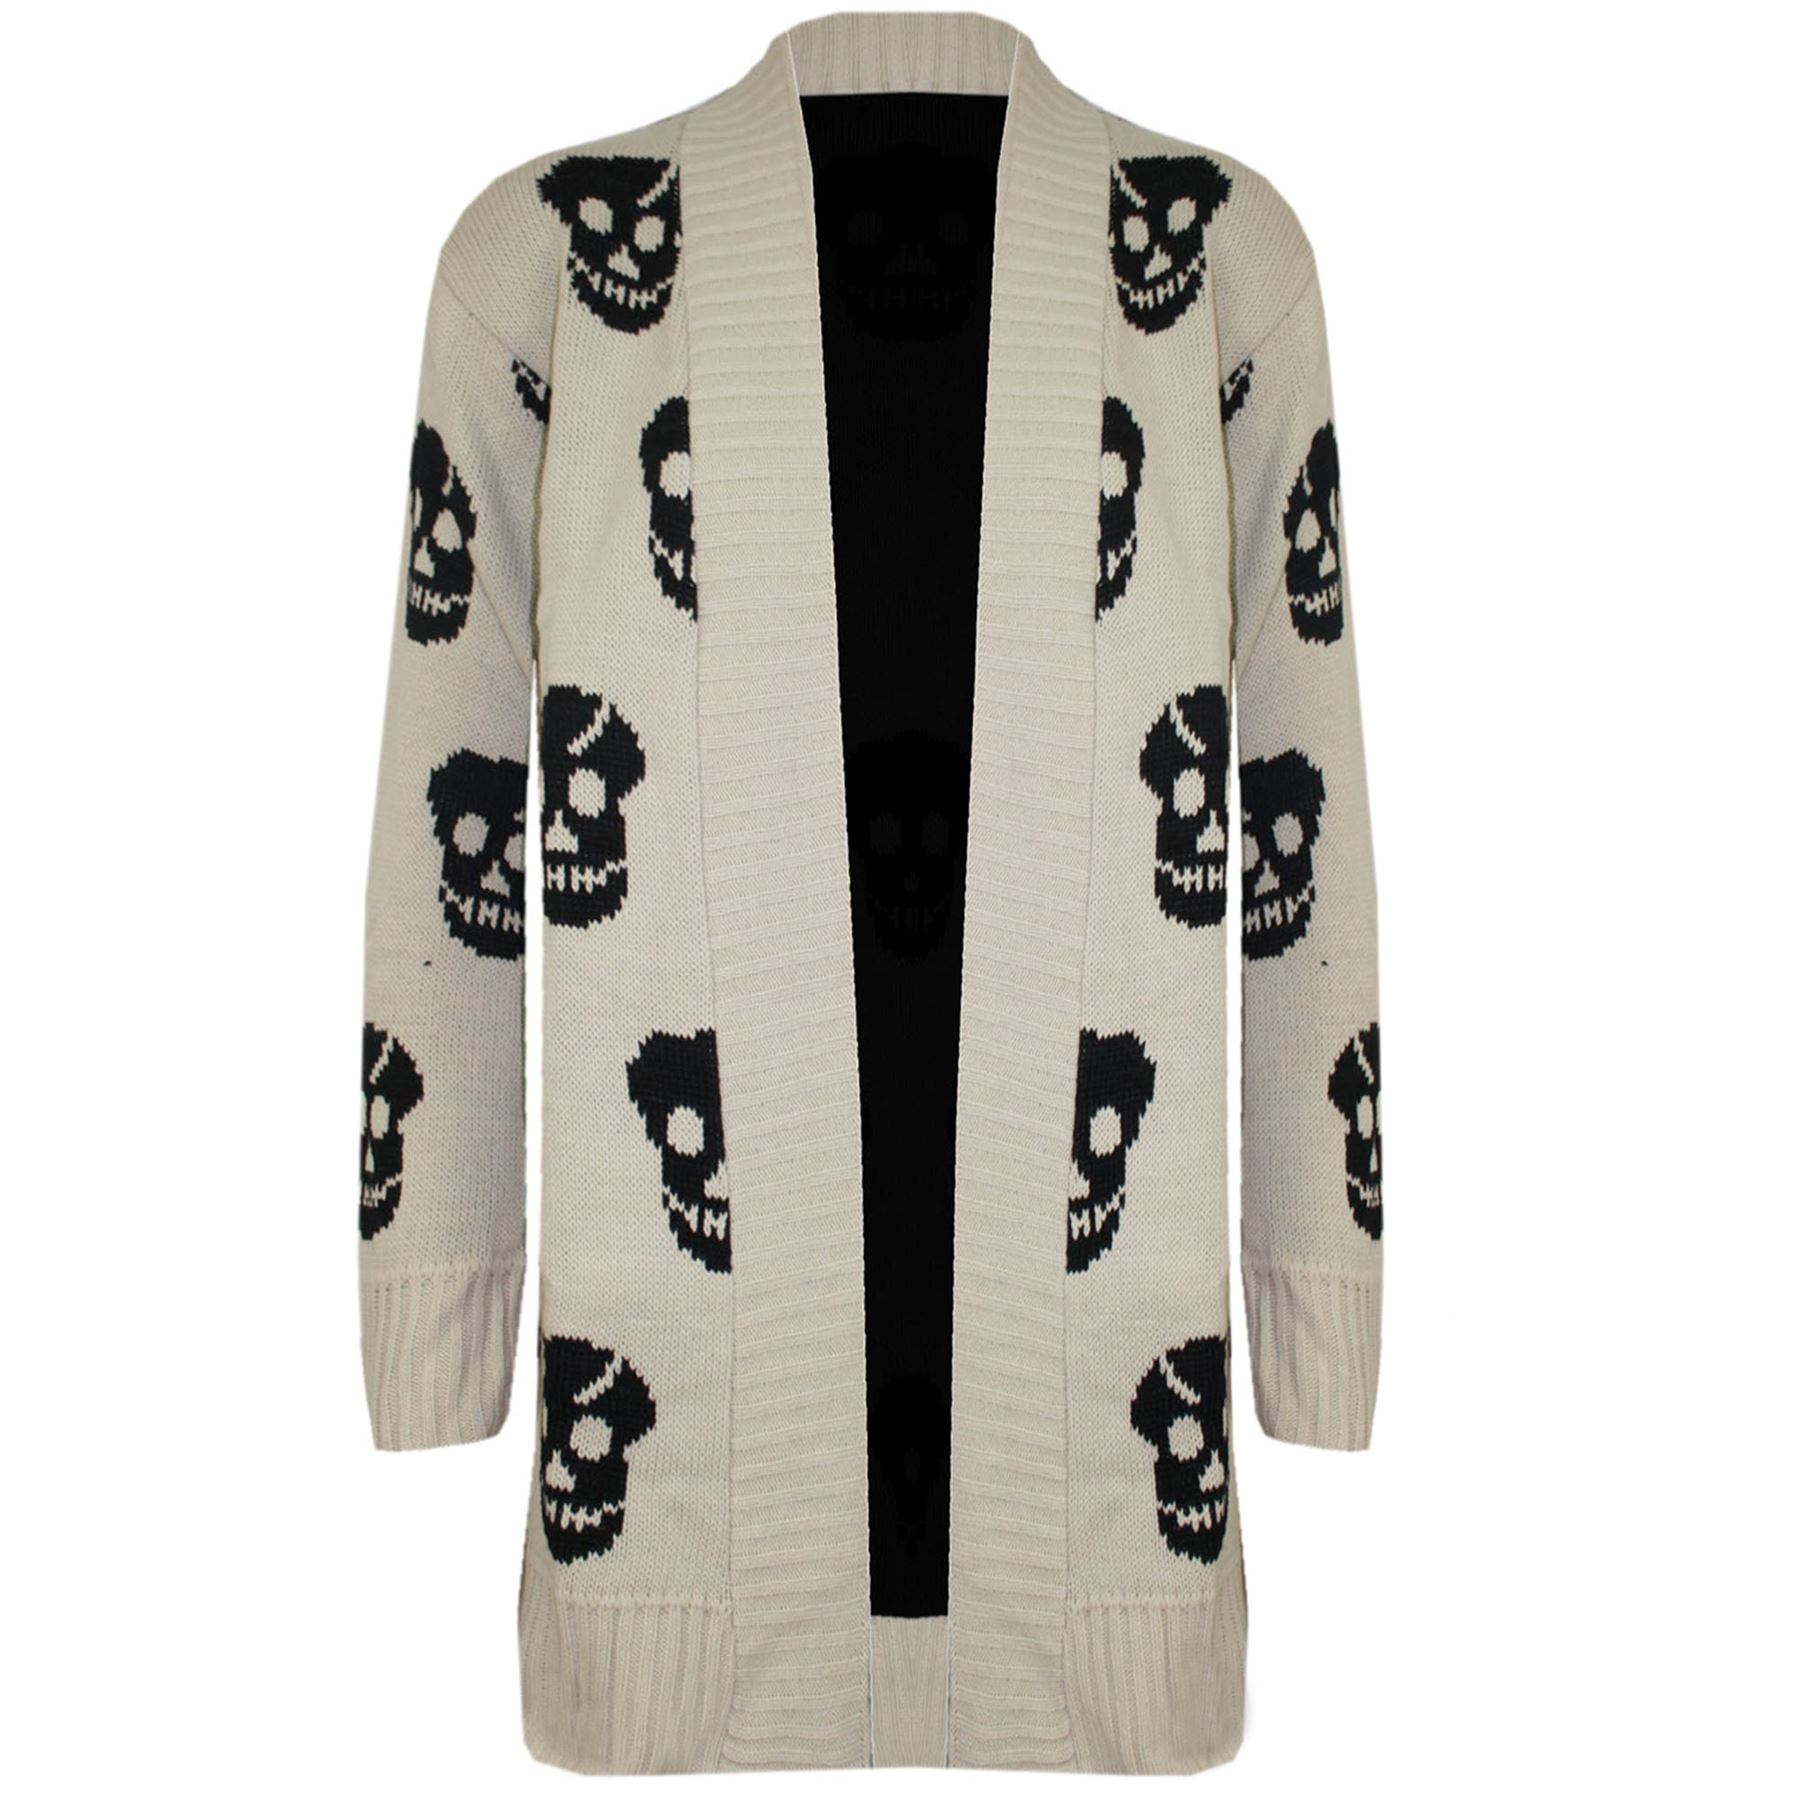 Womens Skull Front Open Waterfall Long Knitted Sweater Ladies Cardigan Top